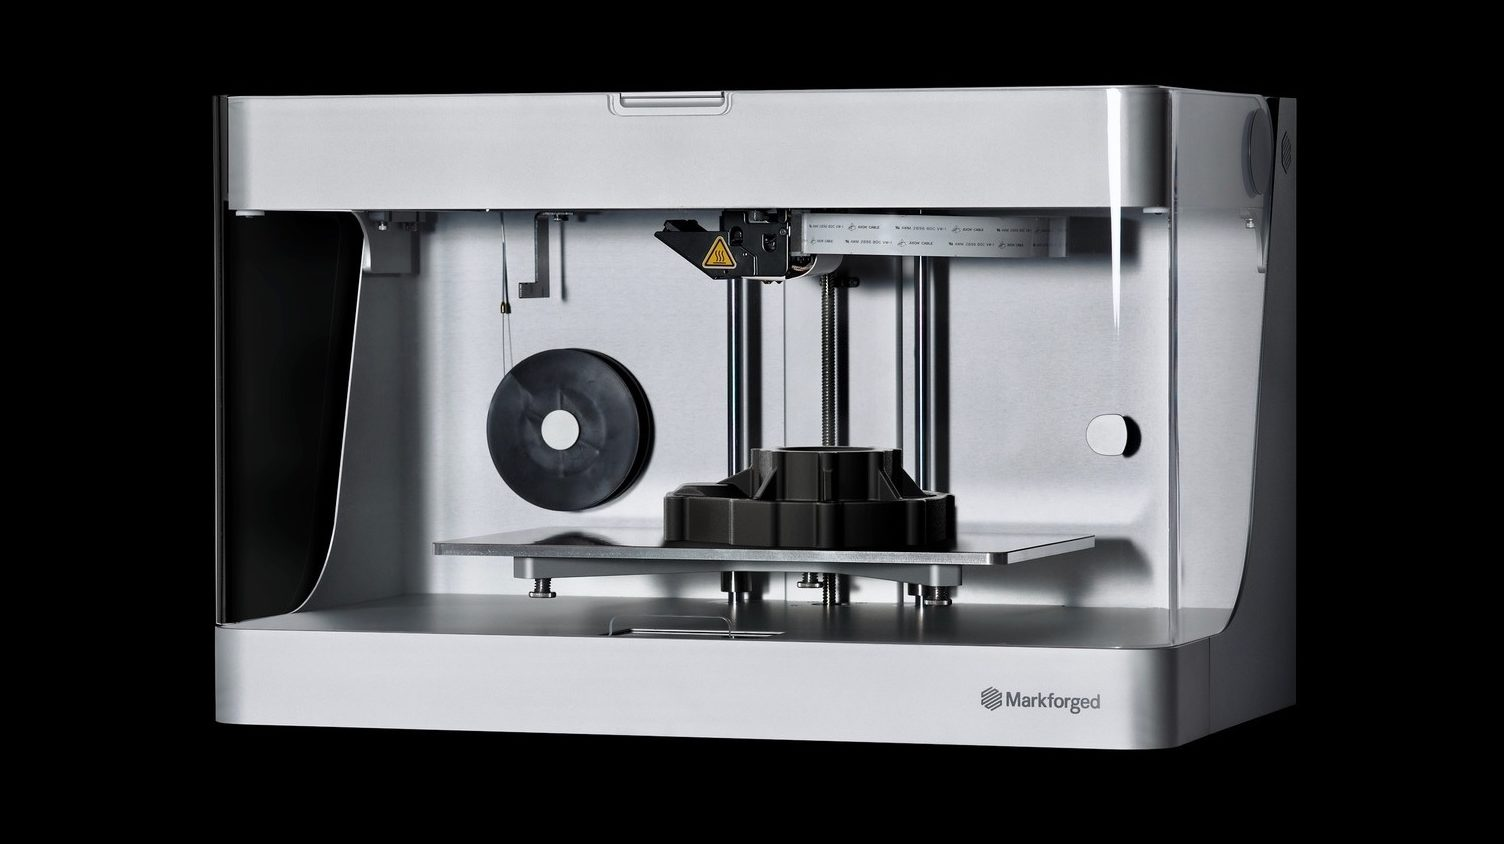 Markforged Mark Two (Gen 2): Review the Specs & Use Cases | All3DP